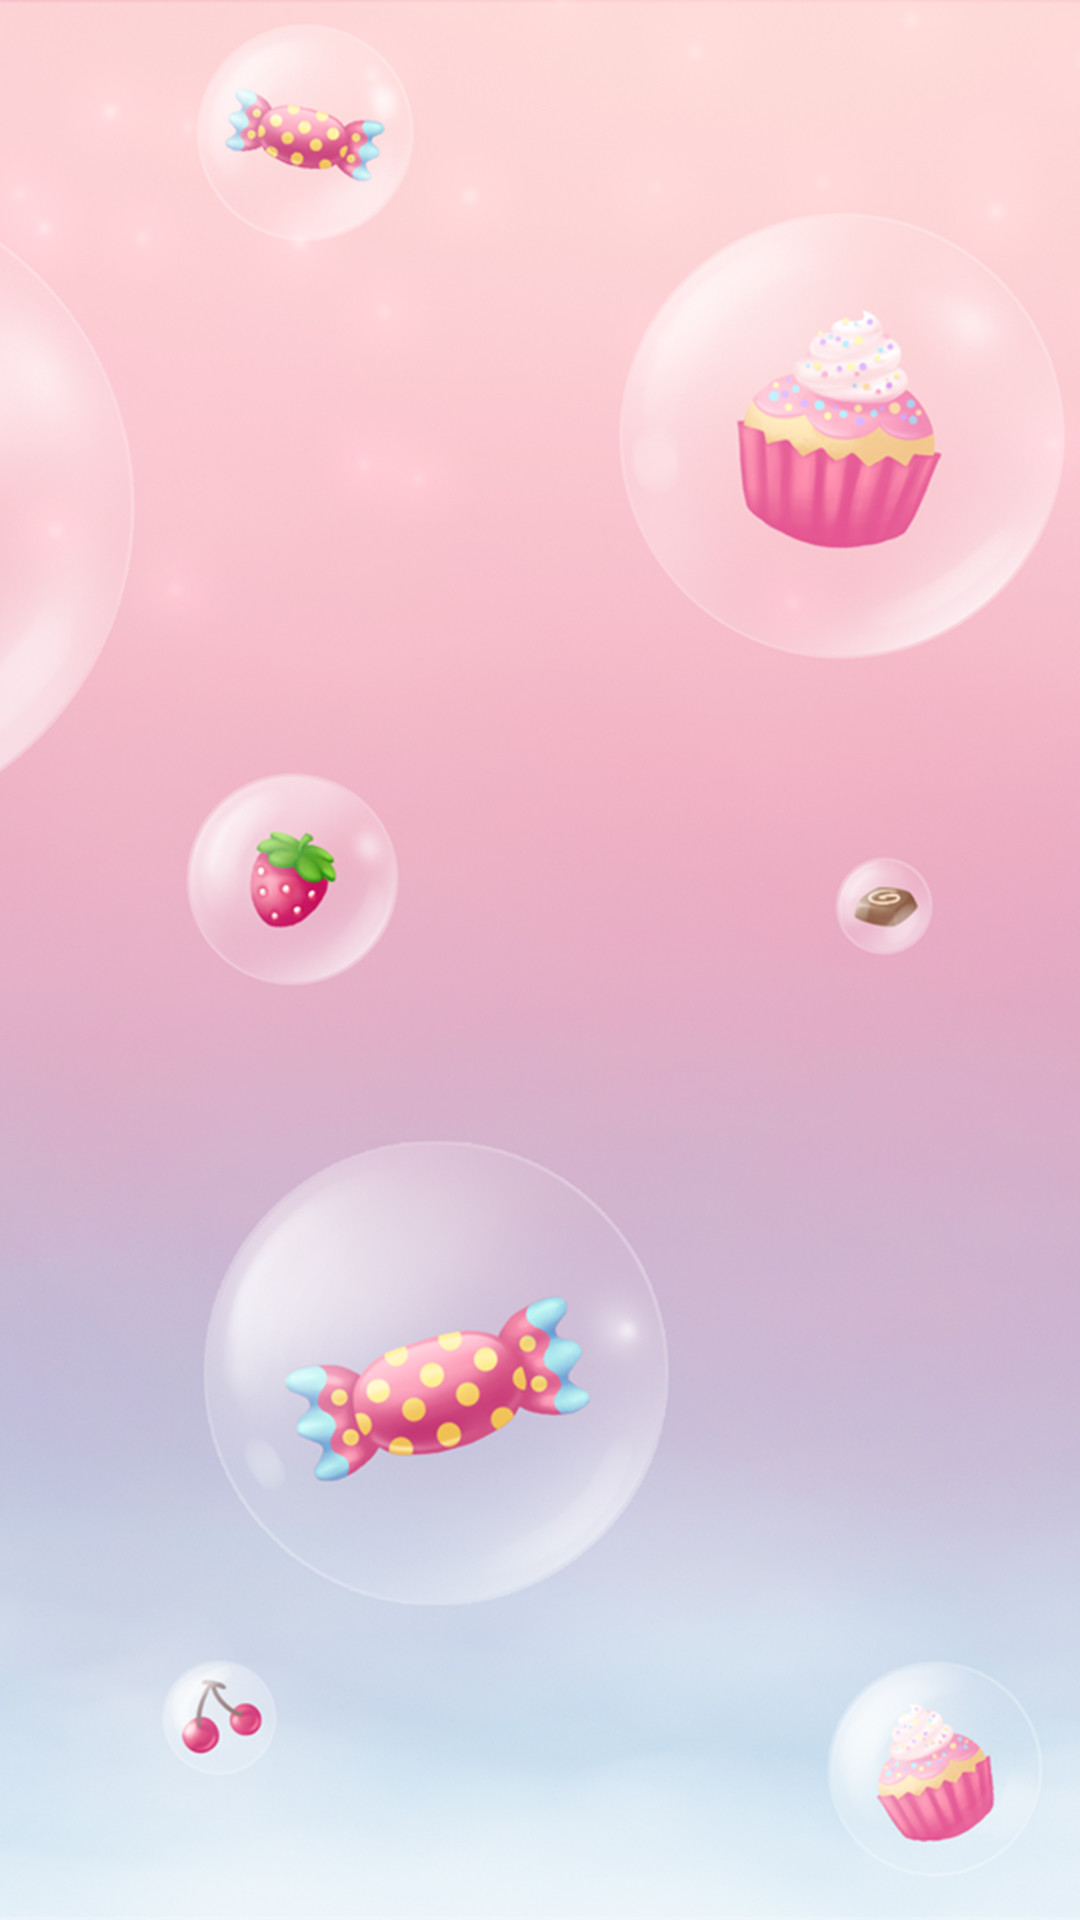 Cute Cupcake Backgrounds 49 Images